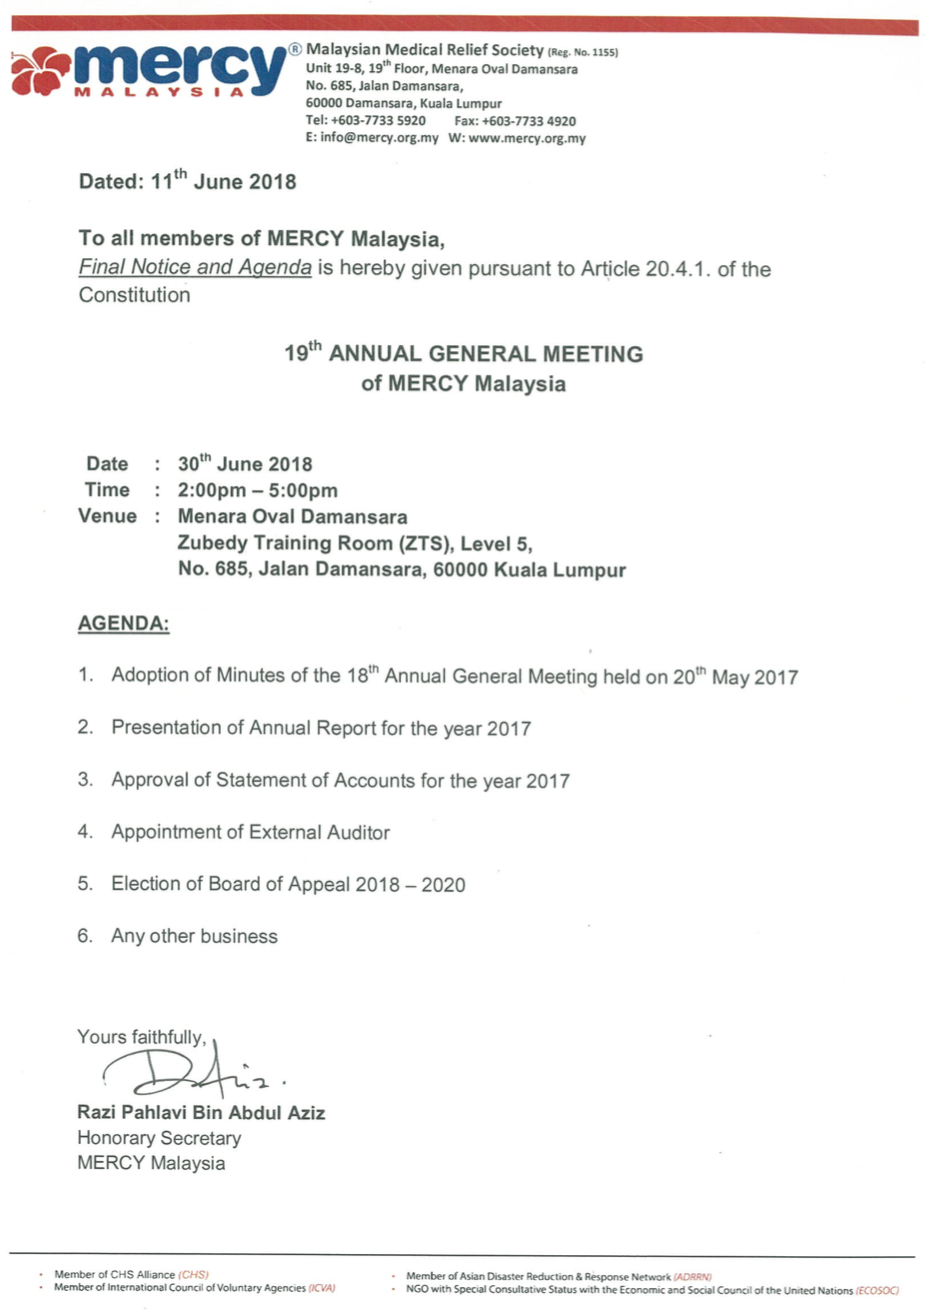 Notice Of Meeting And Agenda Sample from www.mercy.org.my